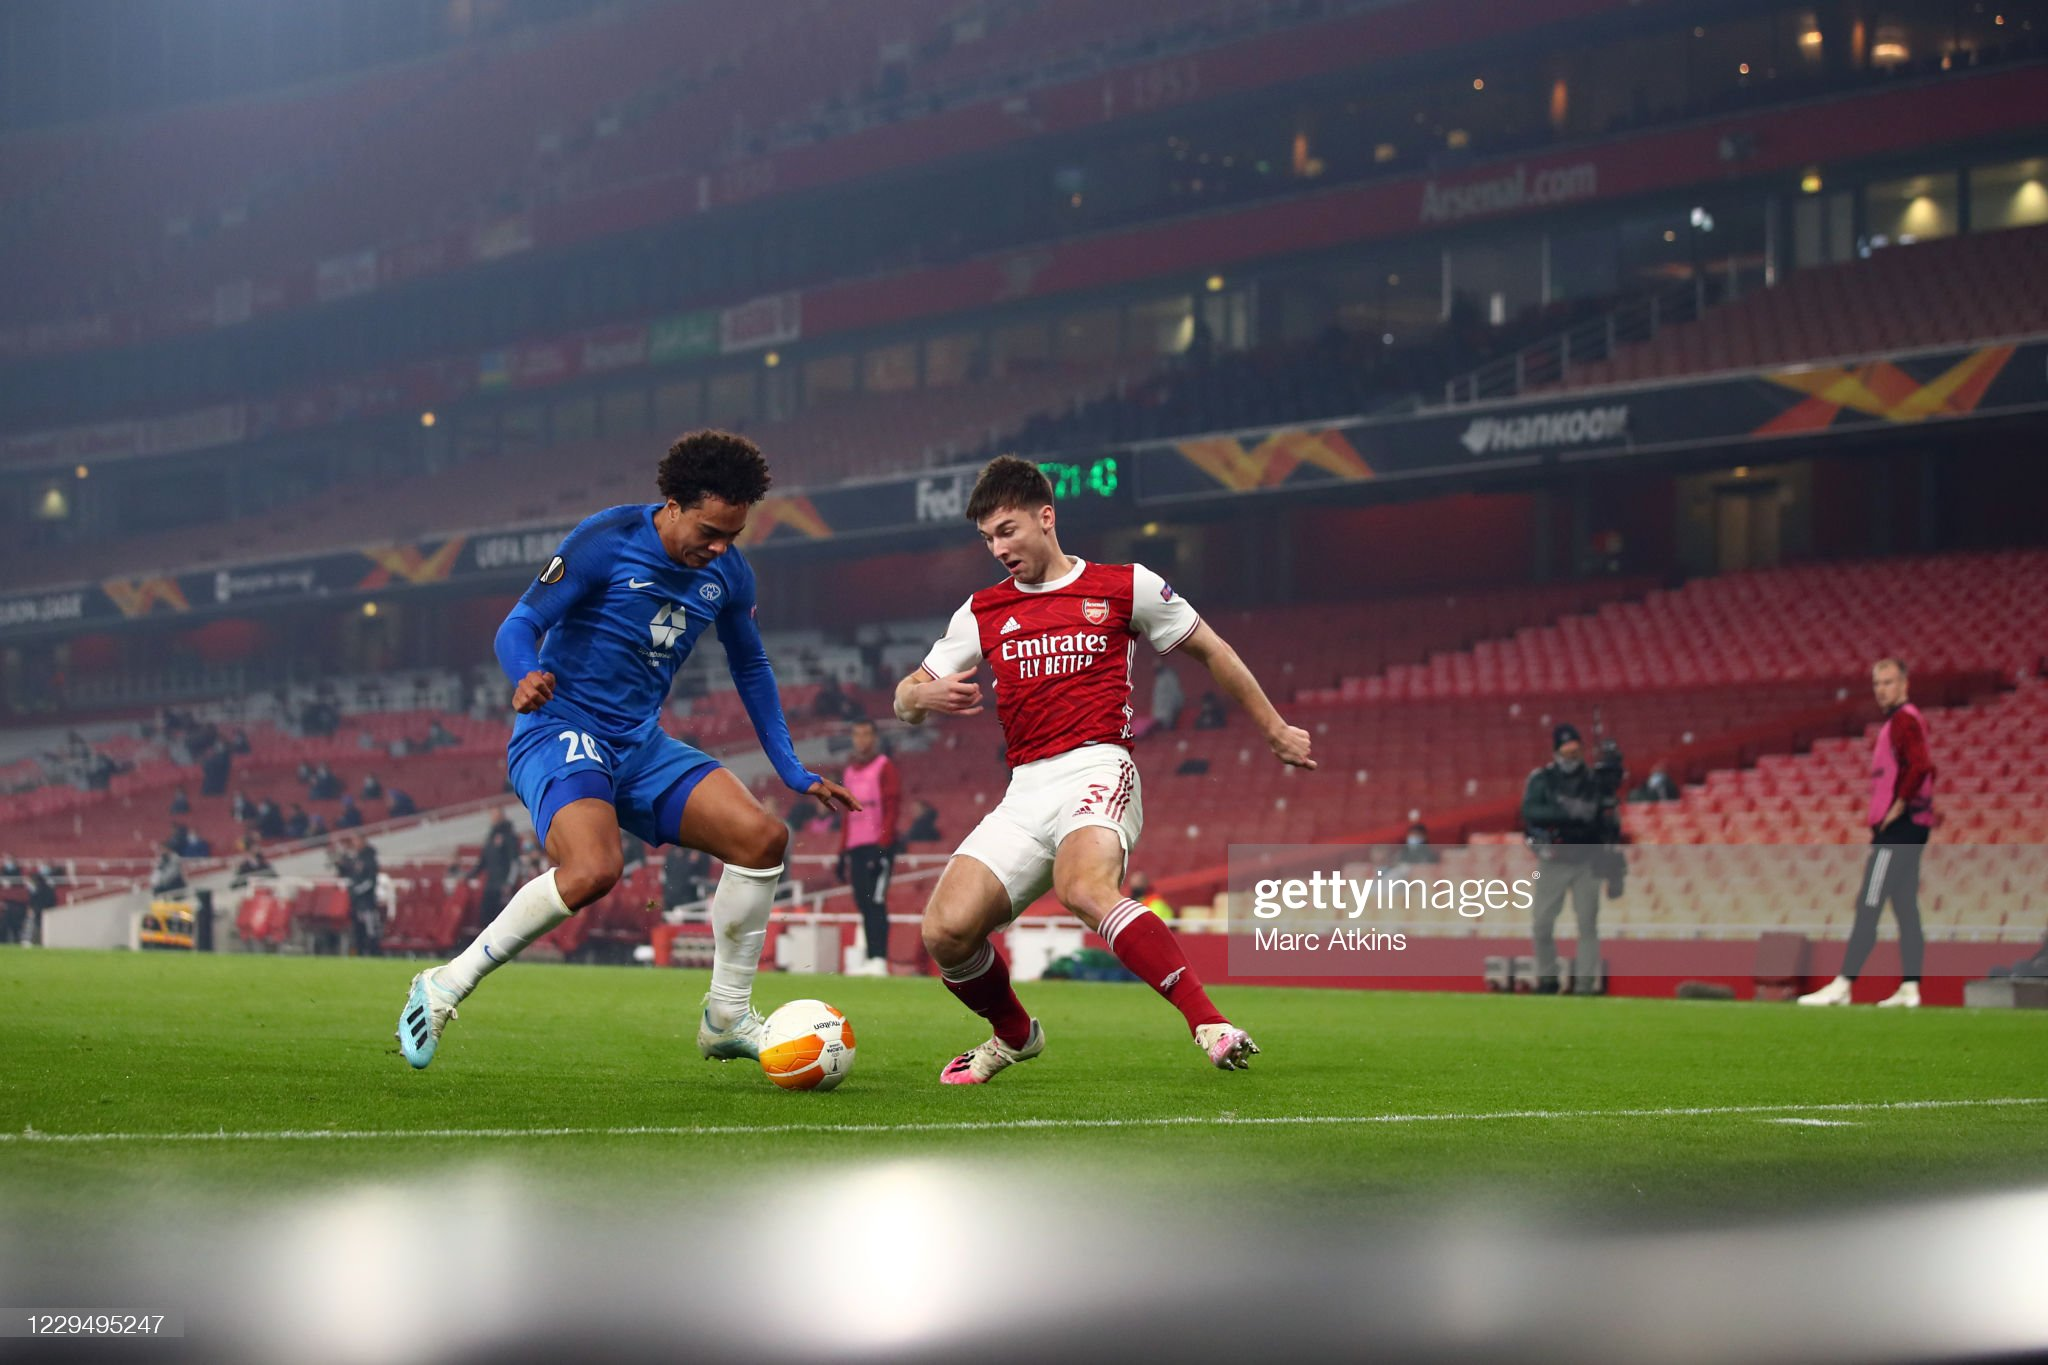 Molde vs Arsenal Preview, prediction and odds